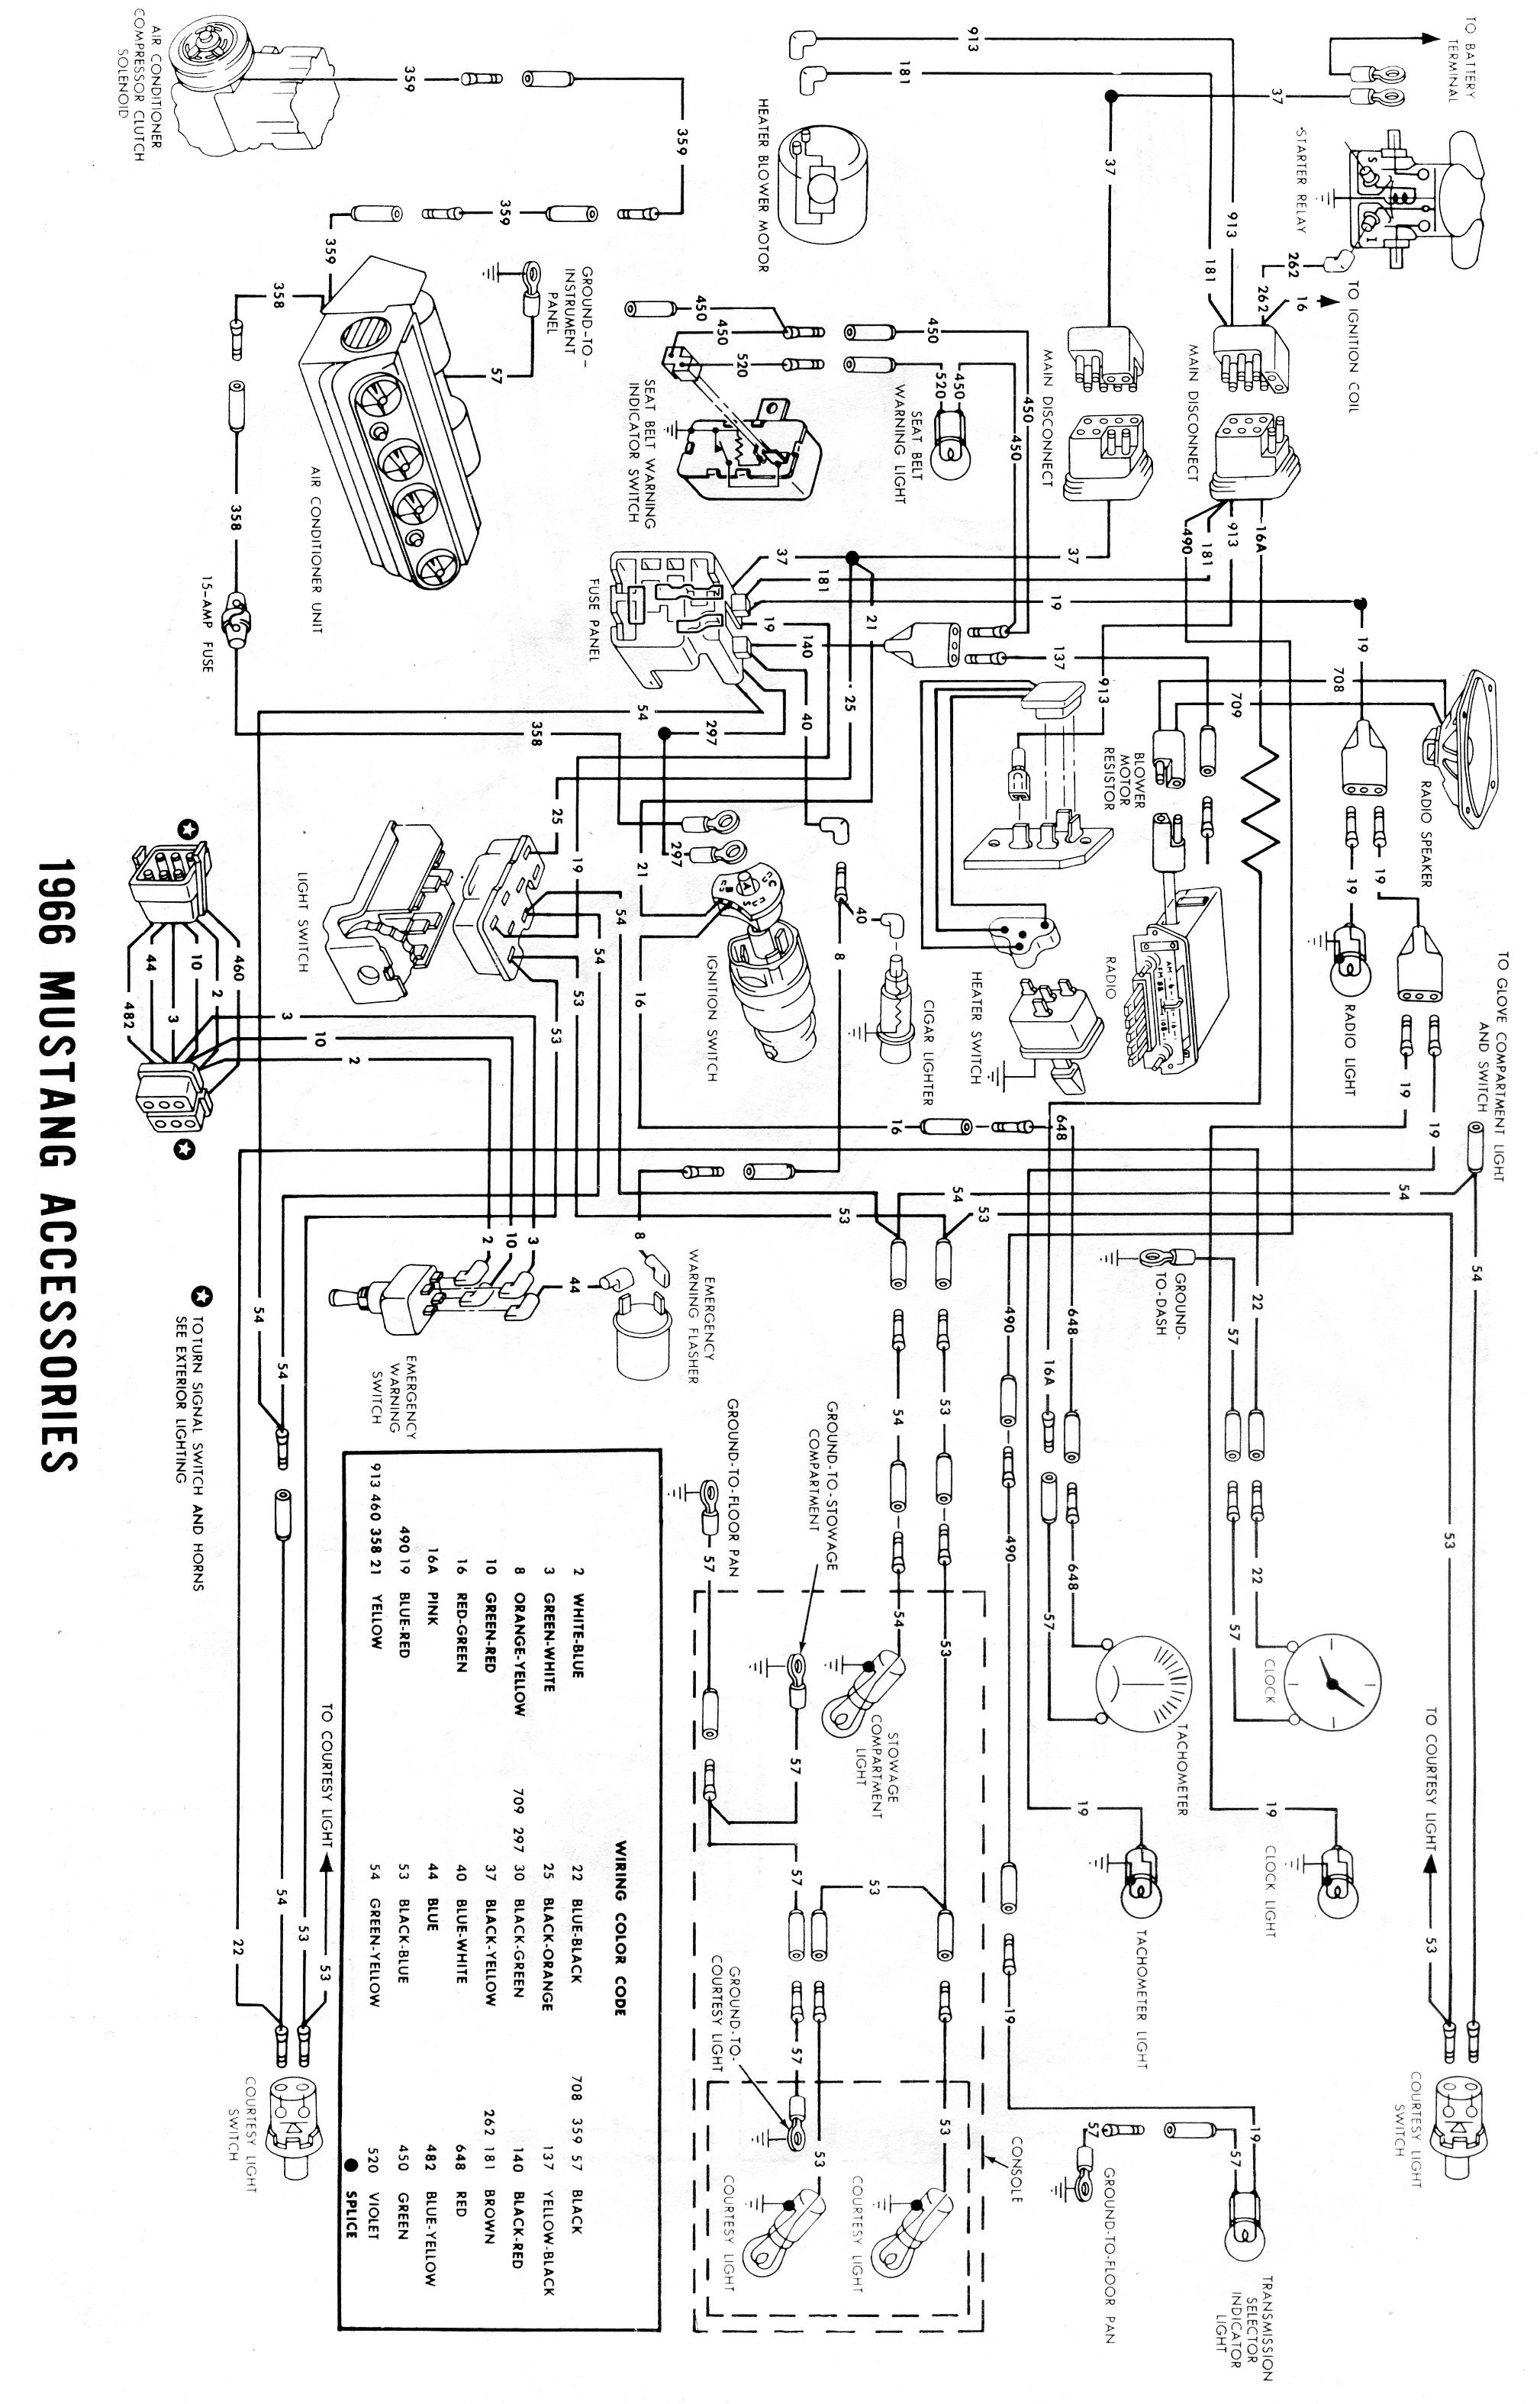 1966 ford mustang wiring diagram wiring diagrams and schematics 1966 mustang replacement underdash wiring harness ford forum